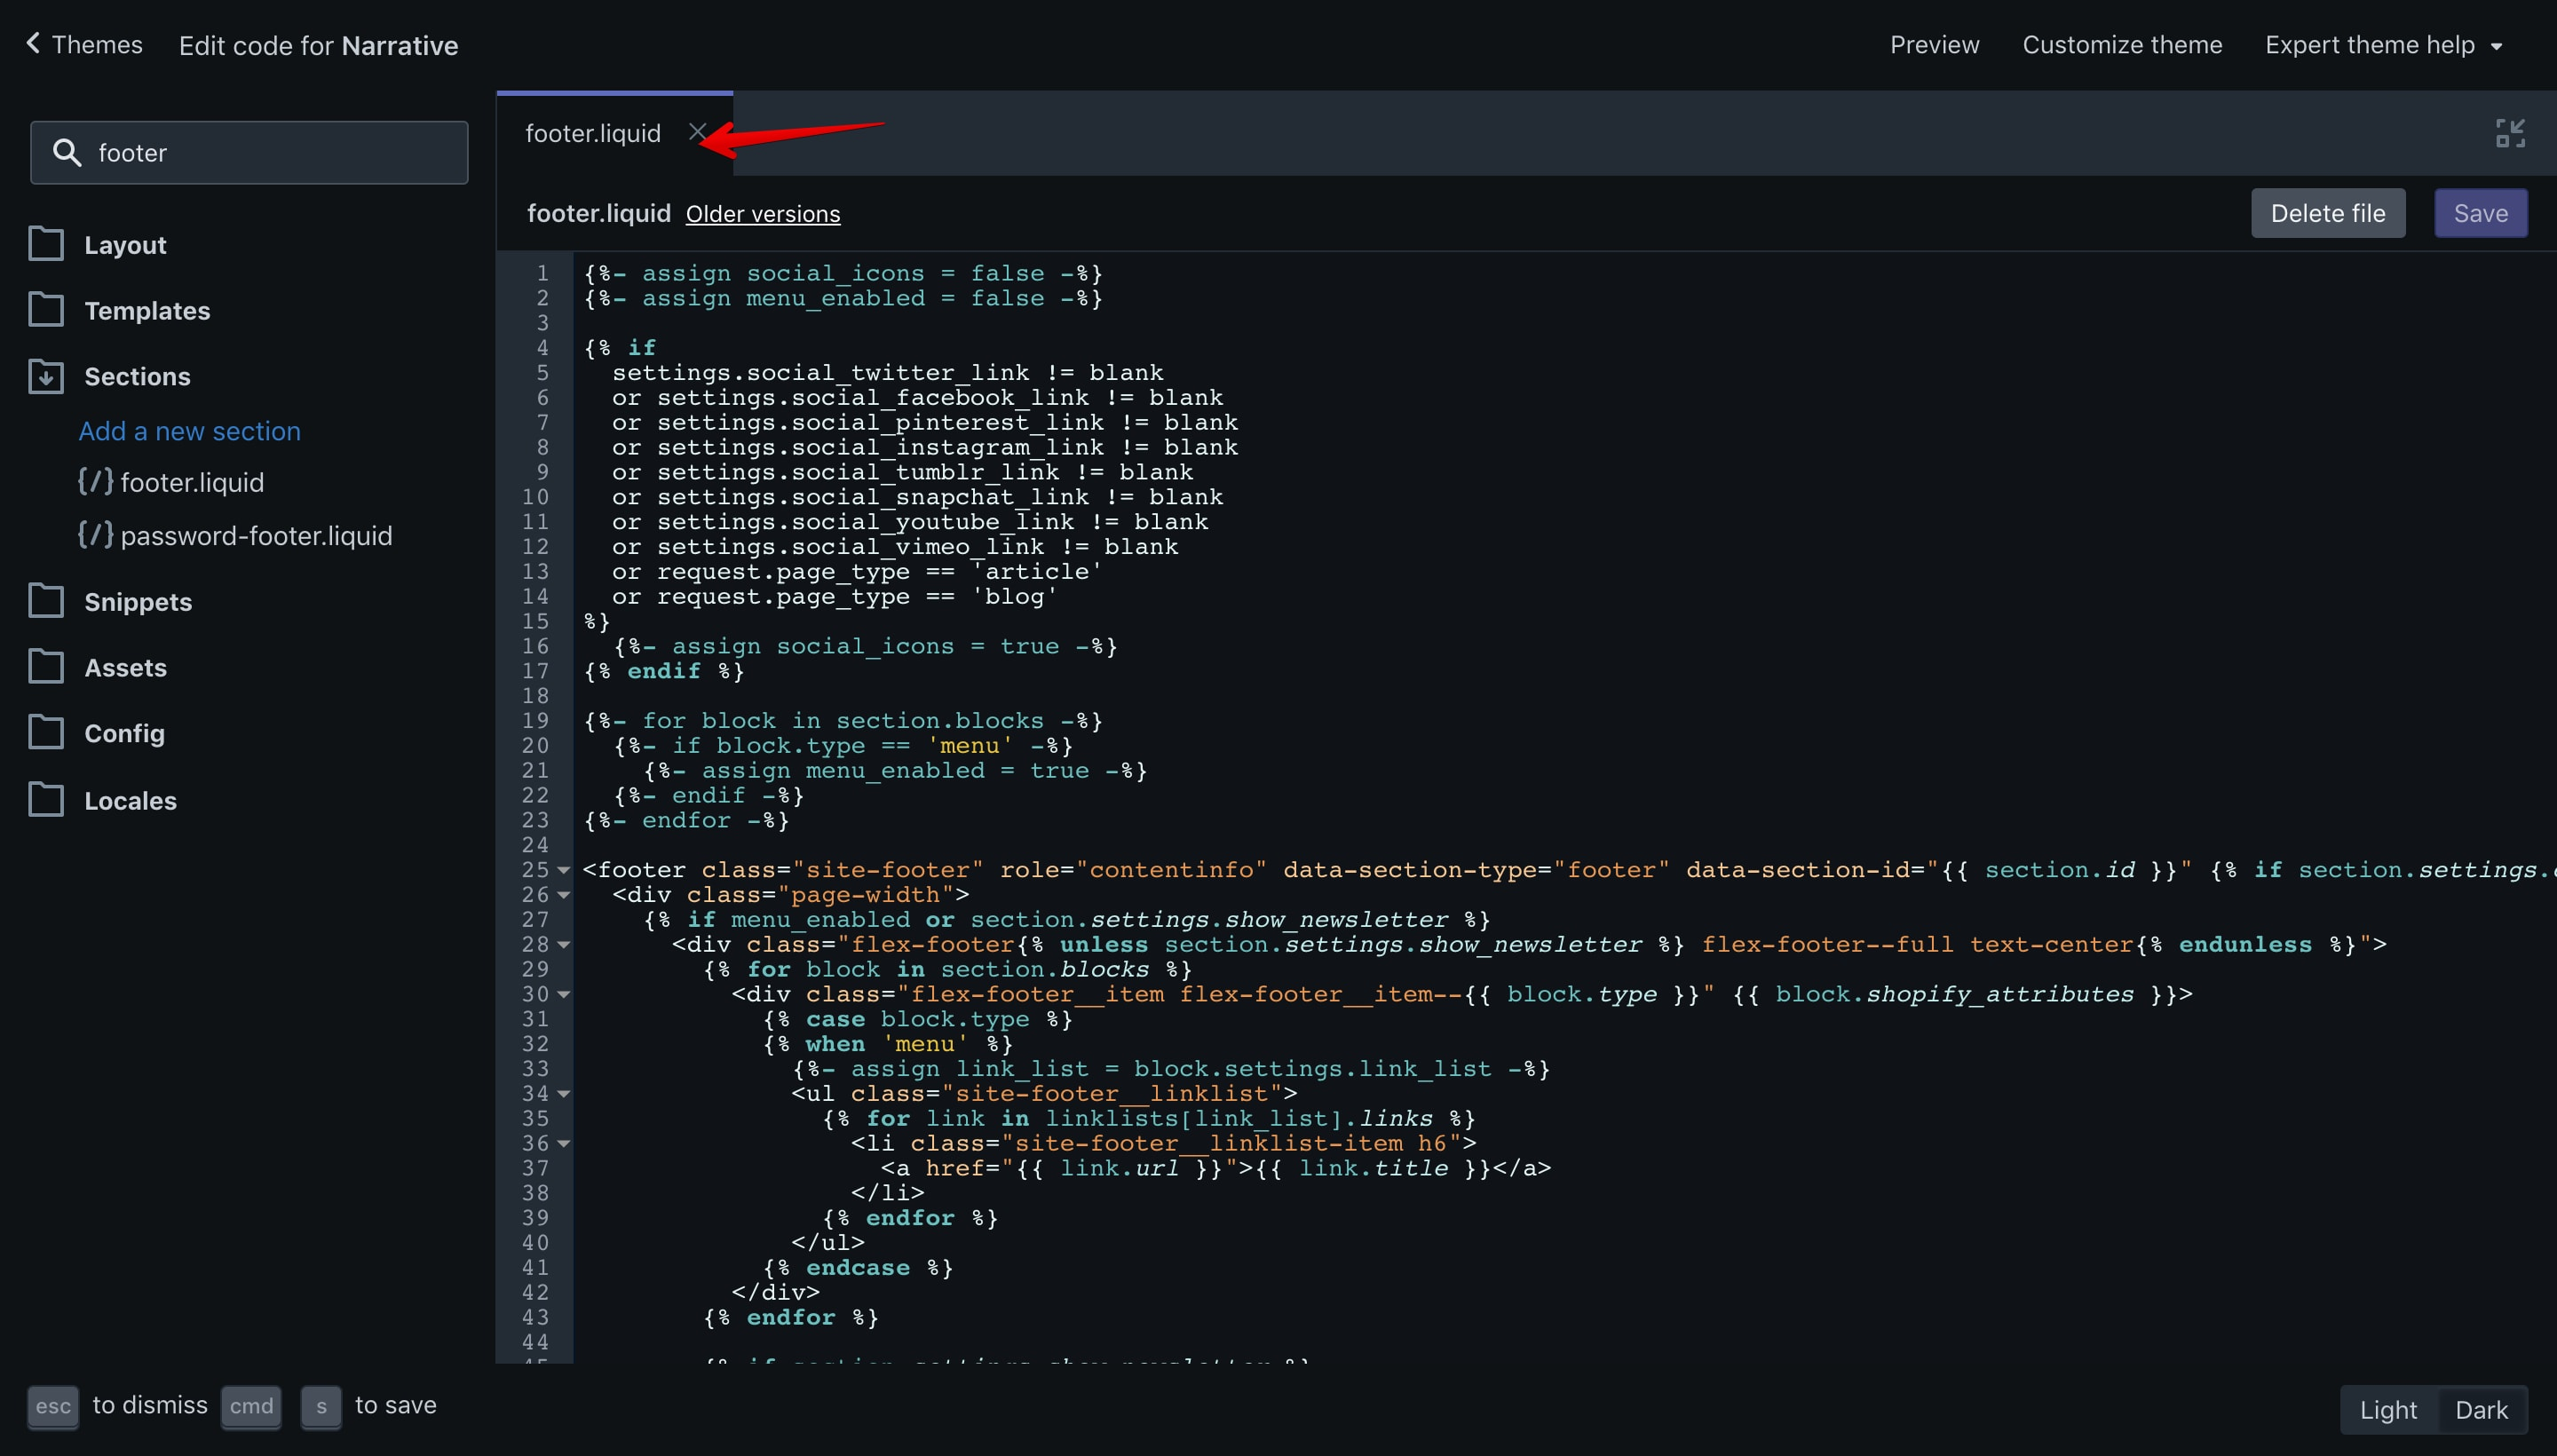 """Narrative theme """"footer.liquid"""" file opened in the code editor."""